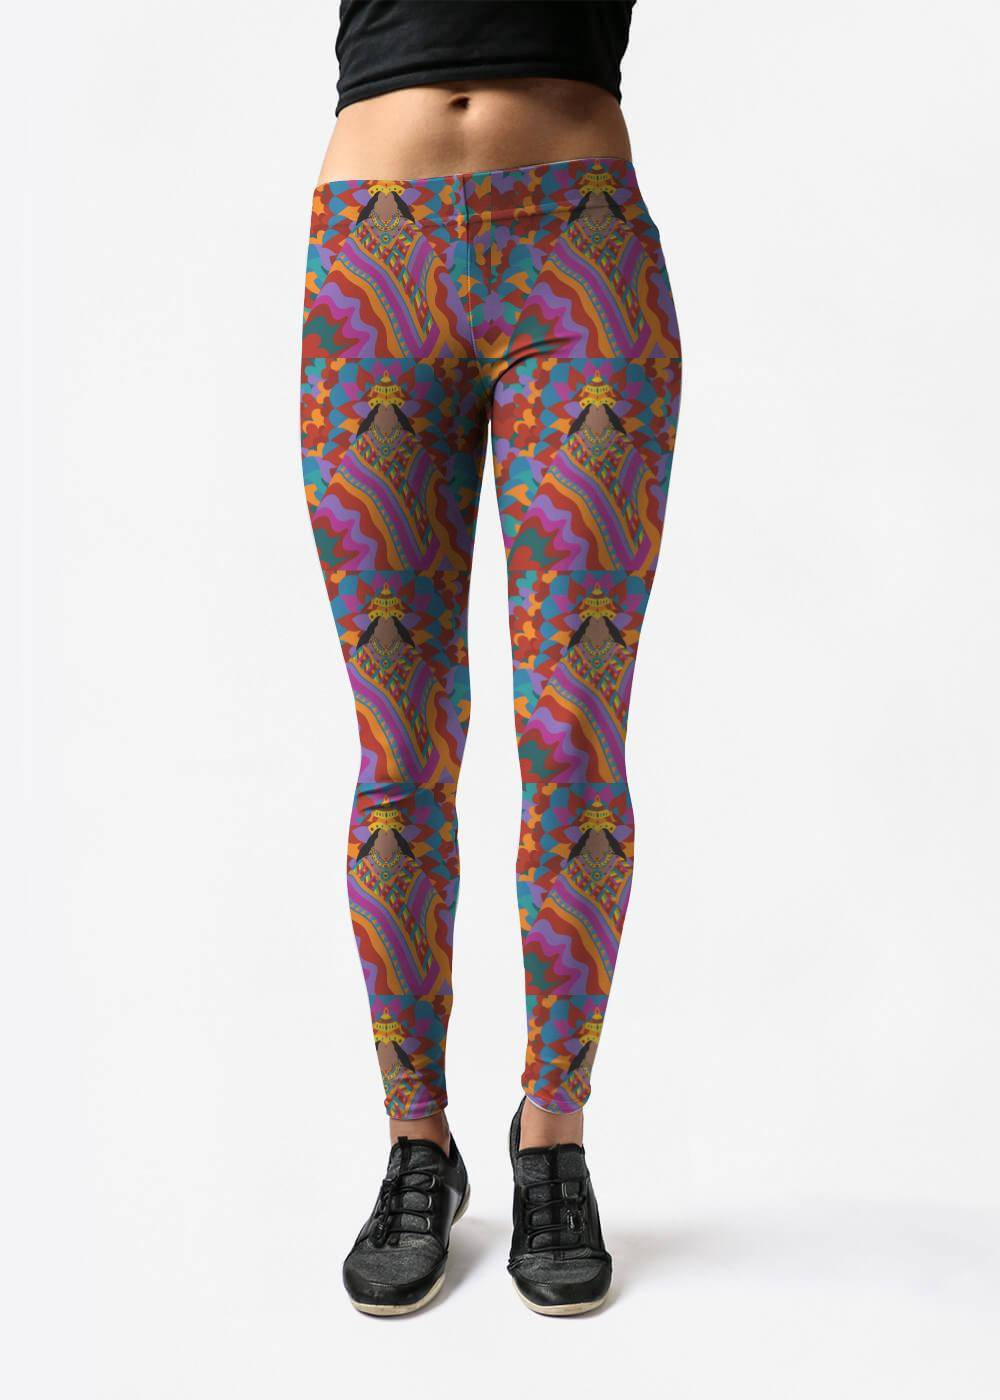 Synthia Saint James Leggings - Devi Lakshmi Rangoli by Synthia Saint James Original Artist  - Size: Medium